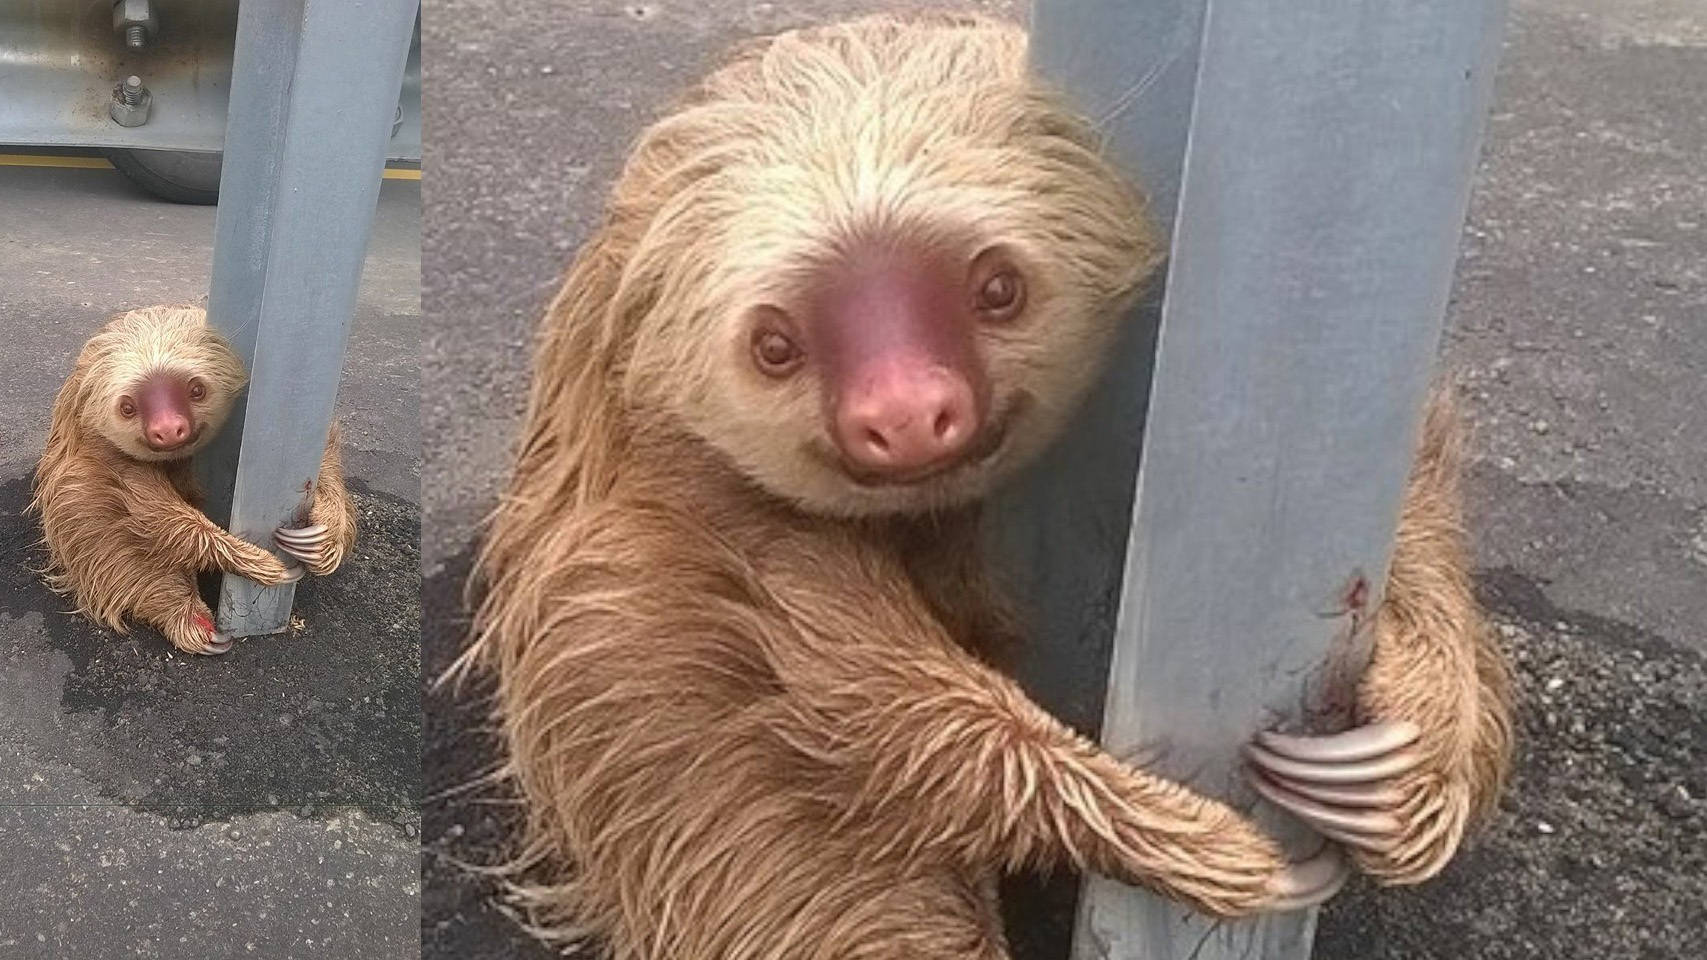 The-most-adorable-sloth-ever-stranded-on-highway